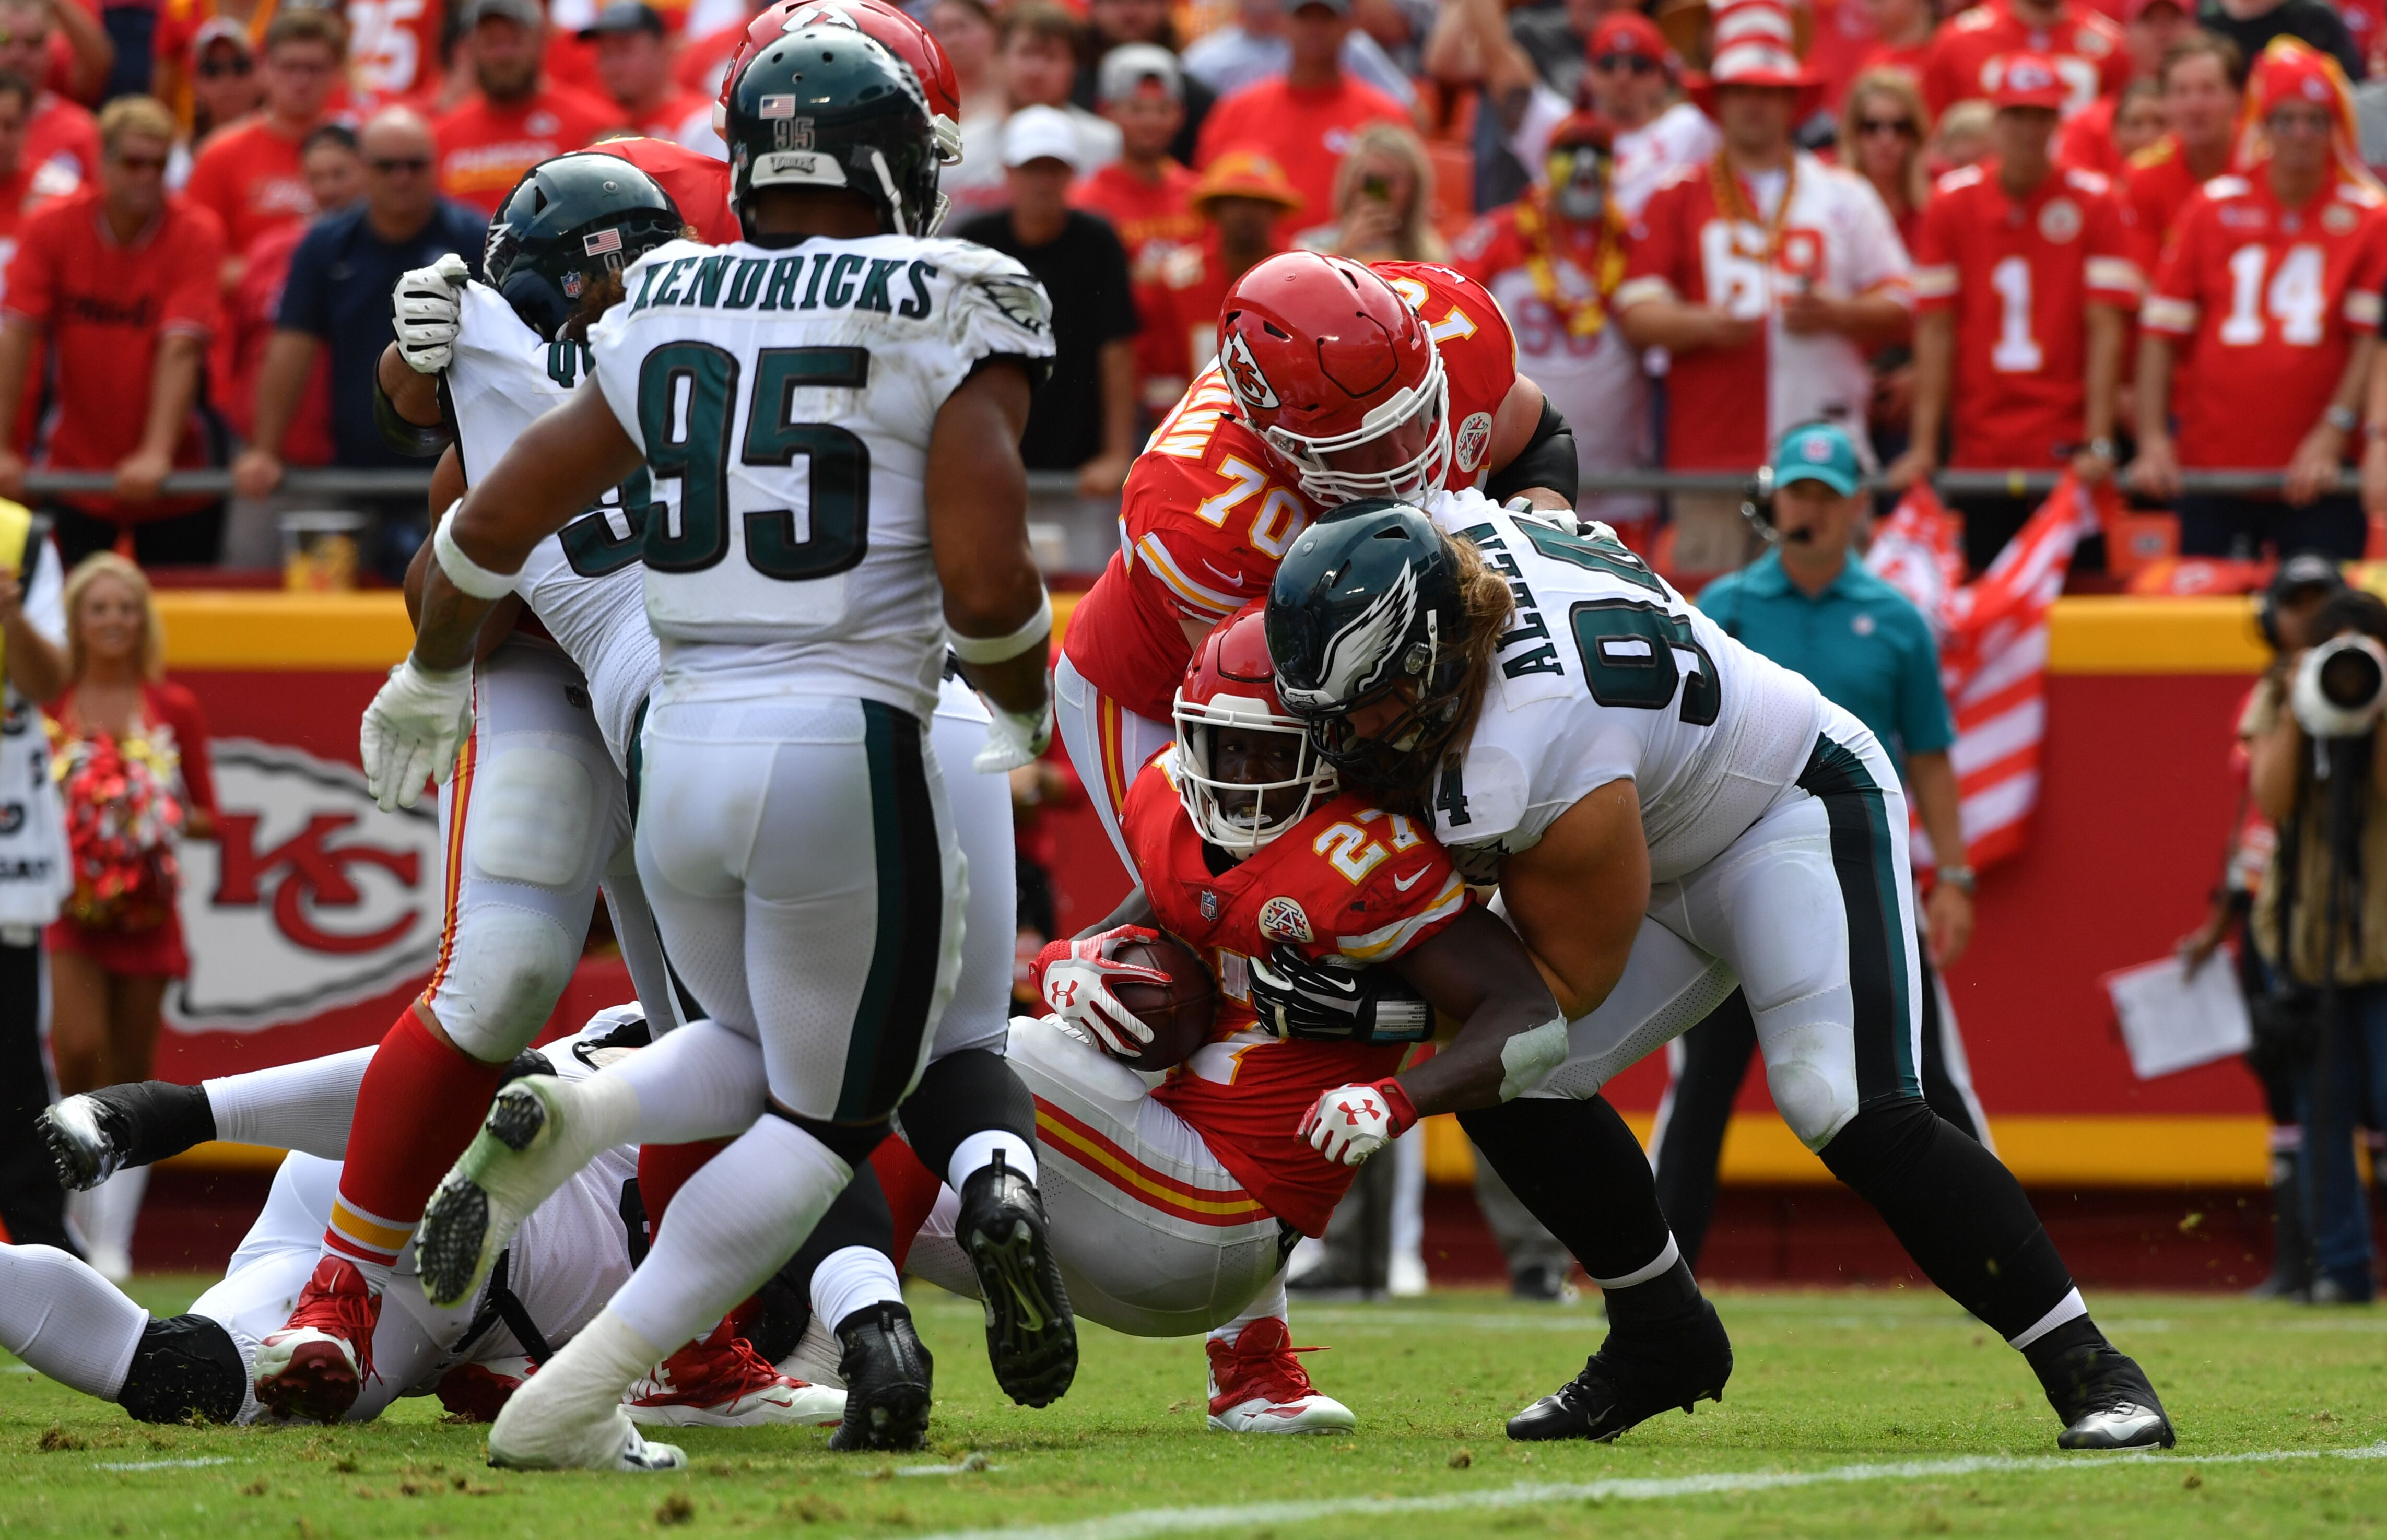 Philadelphia Eagles roundup: Defensive tackle, Corey Graham